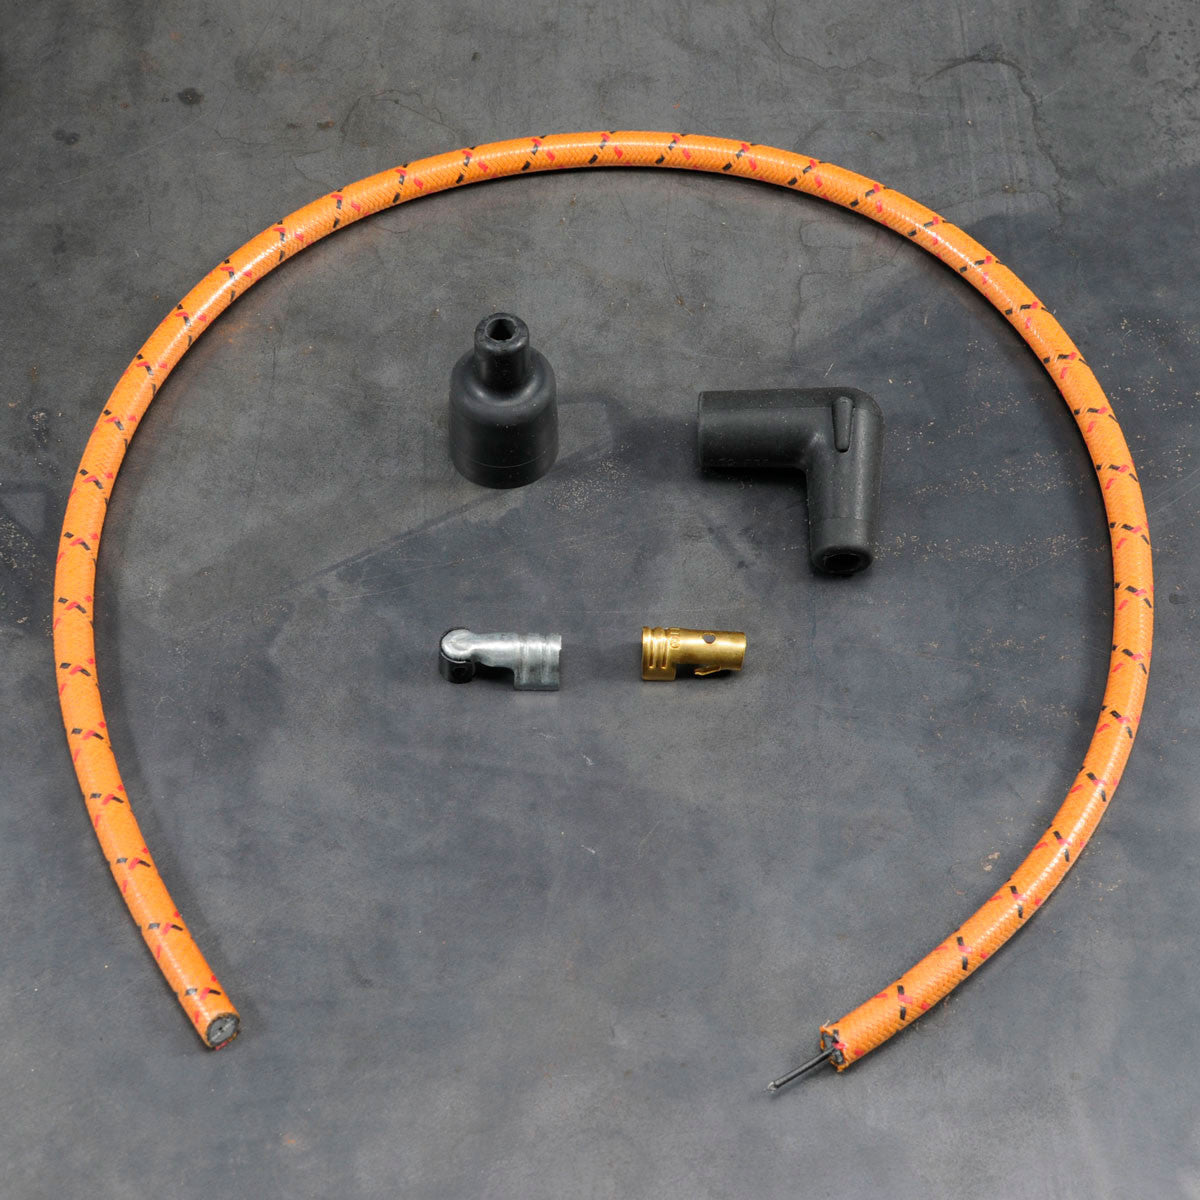 Zip Tie Spark Plug Wiring Harness Free Download Revival Signature Wire Kit Car At